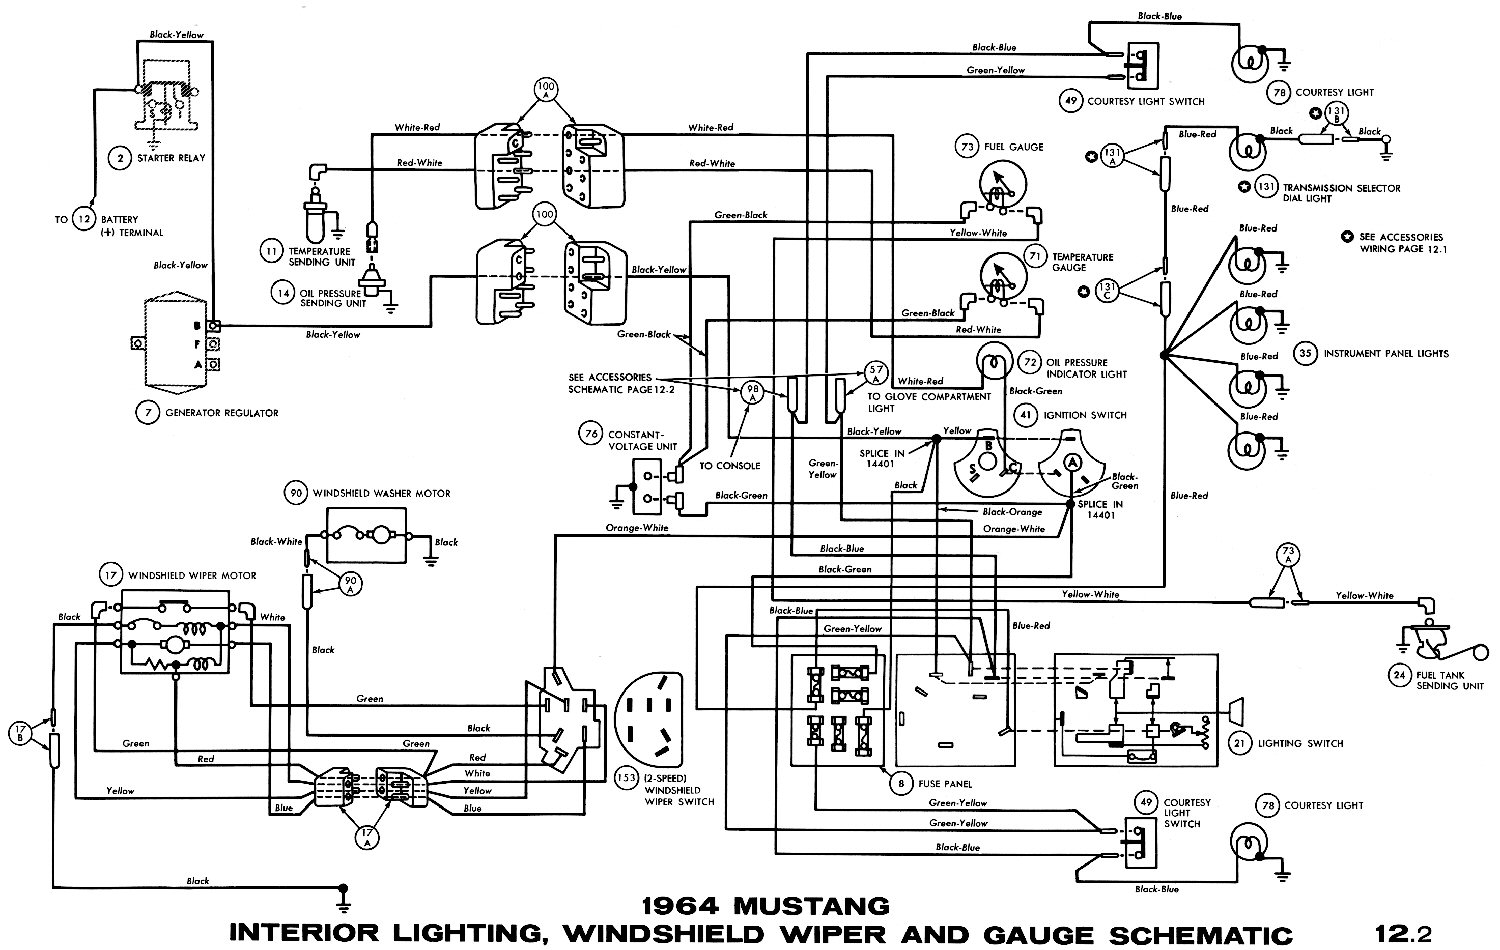 1964k 1964 mustang wiring diagrams average joe restoration 1970 ford mustang wiring diagram at mifinder.co